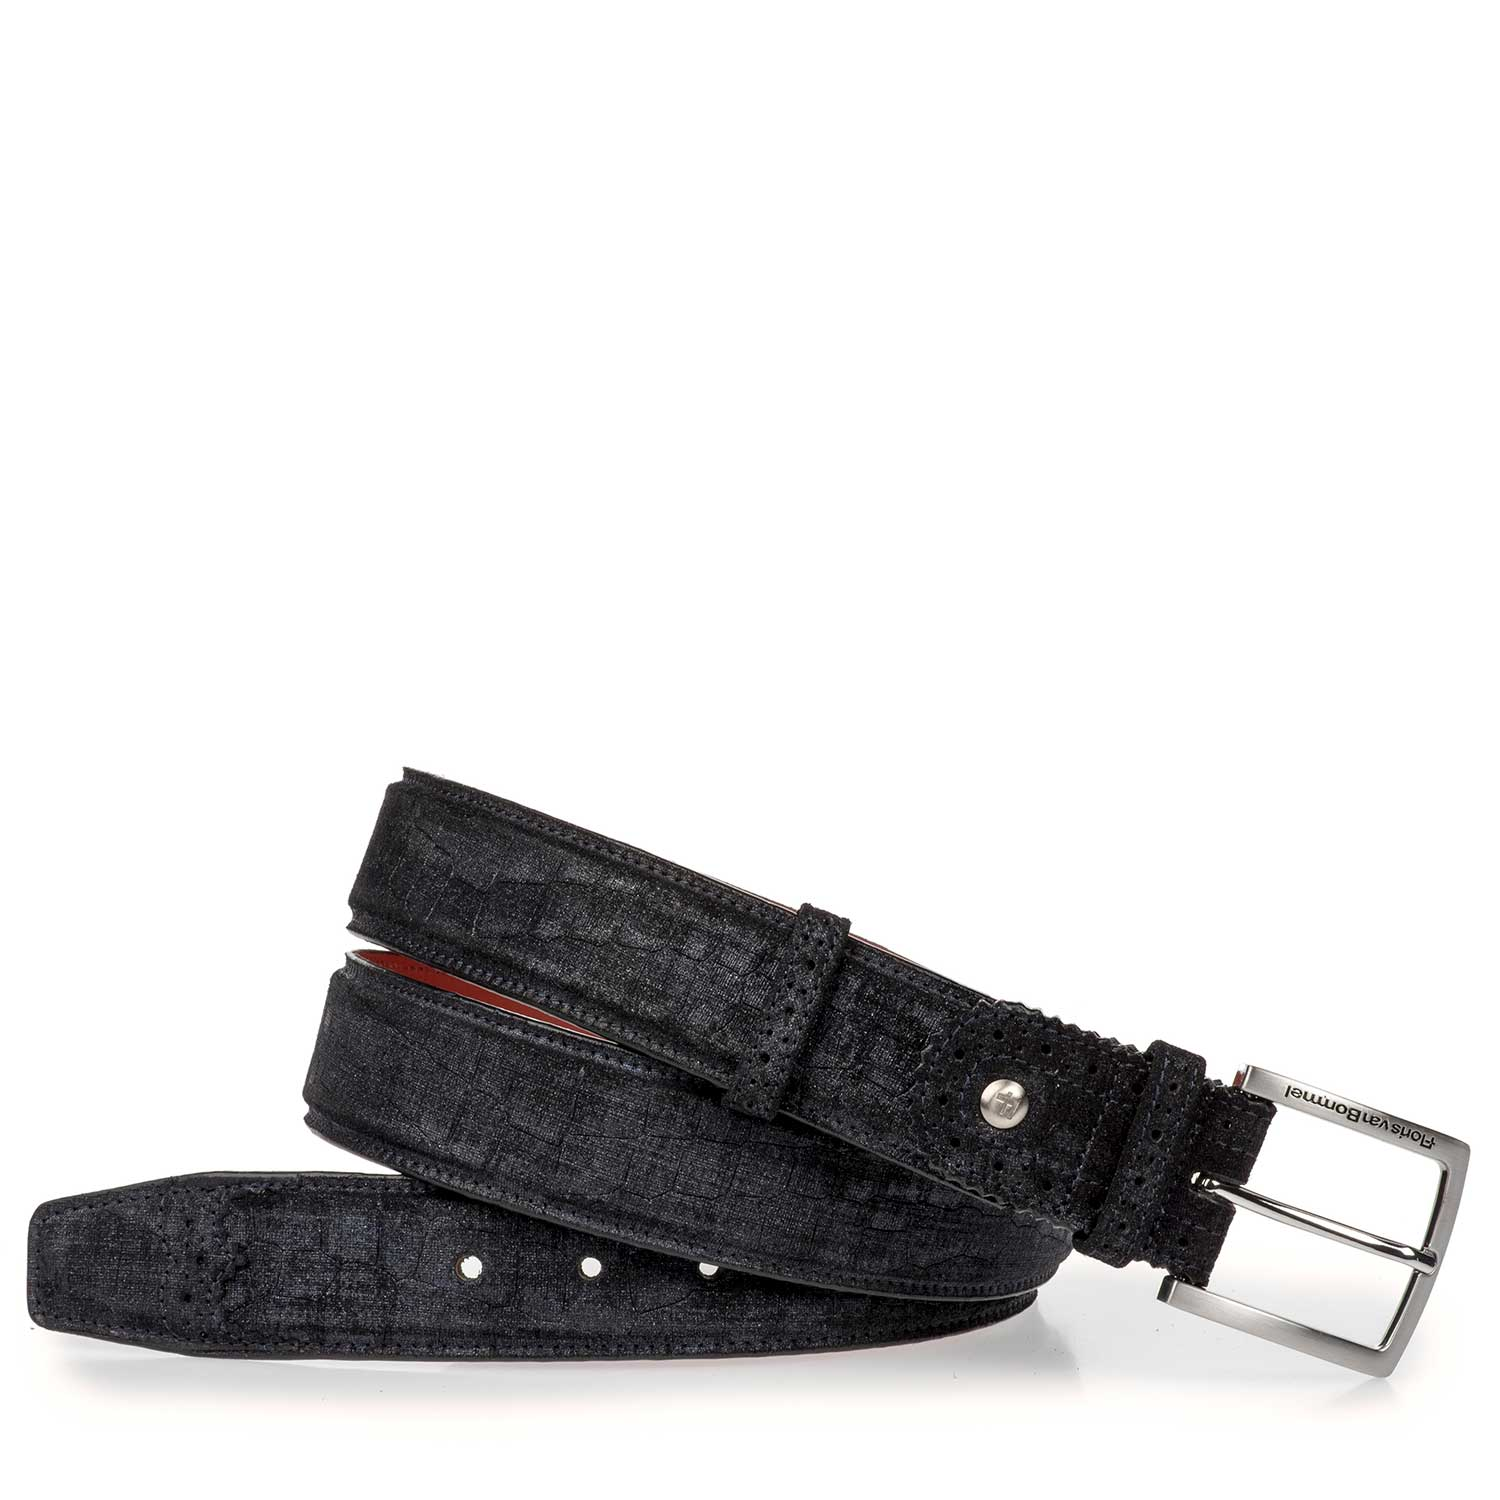 75171/17 - Blue suede leather belt with a check pattern